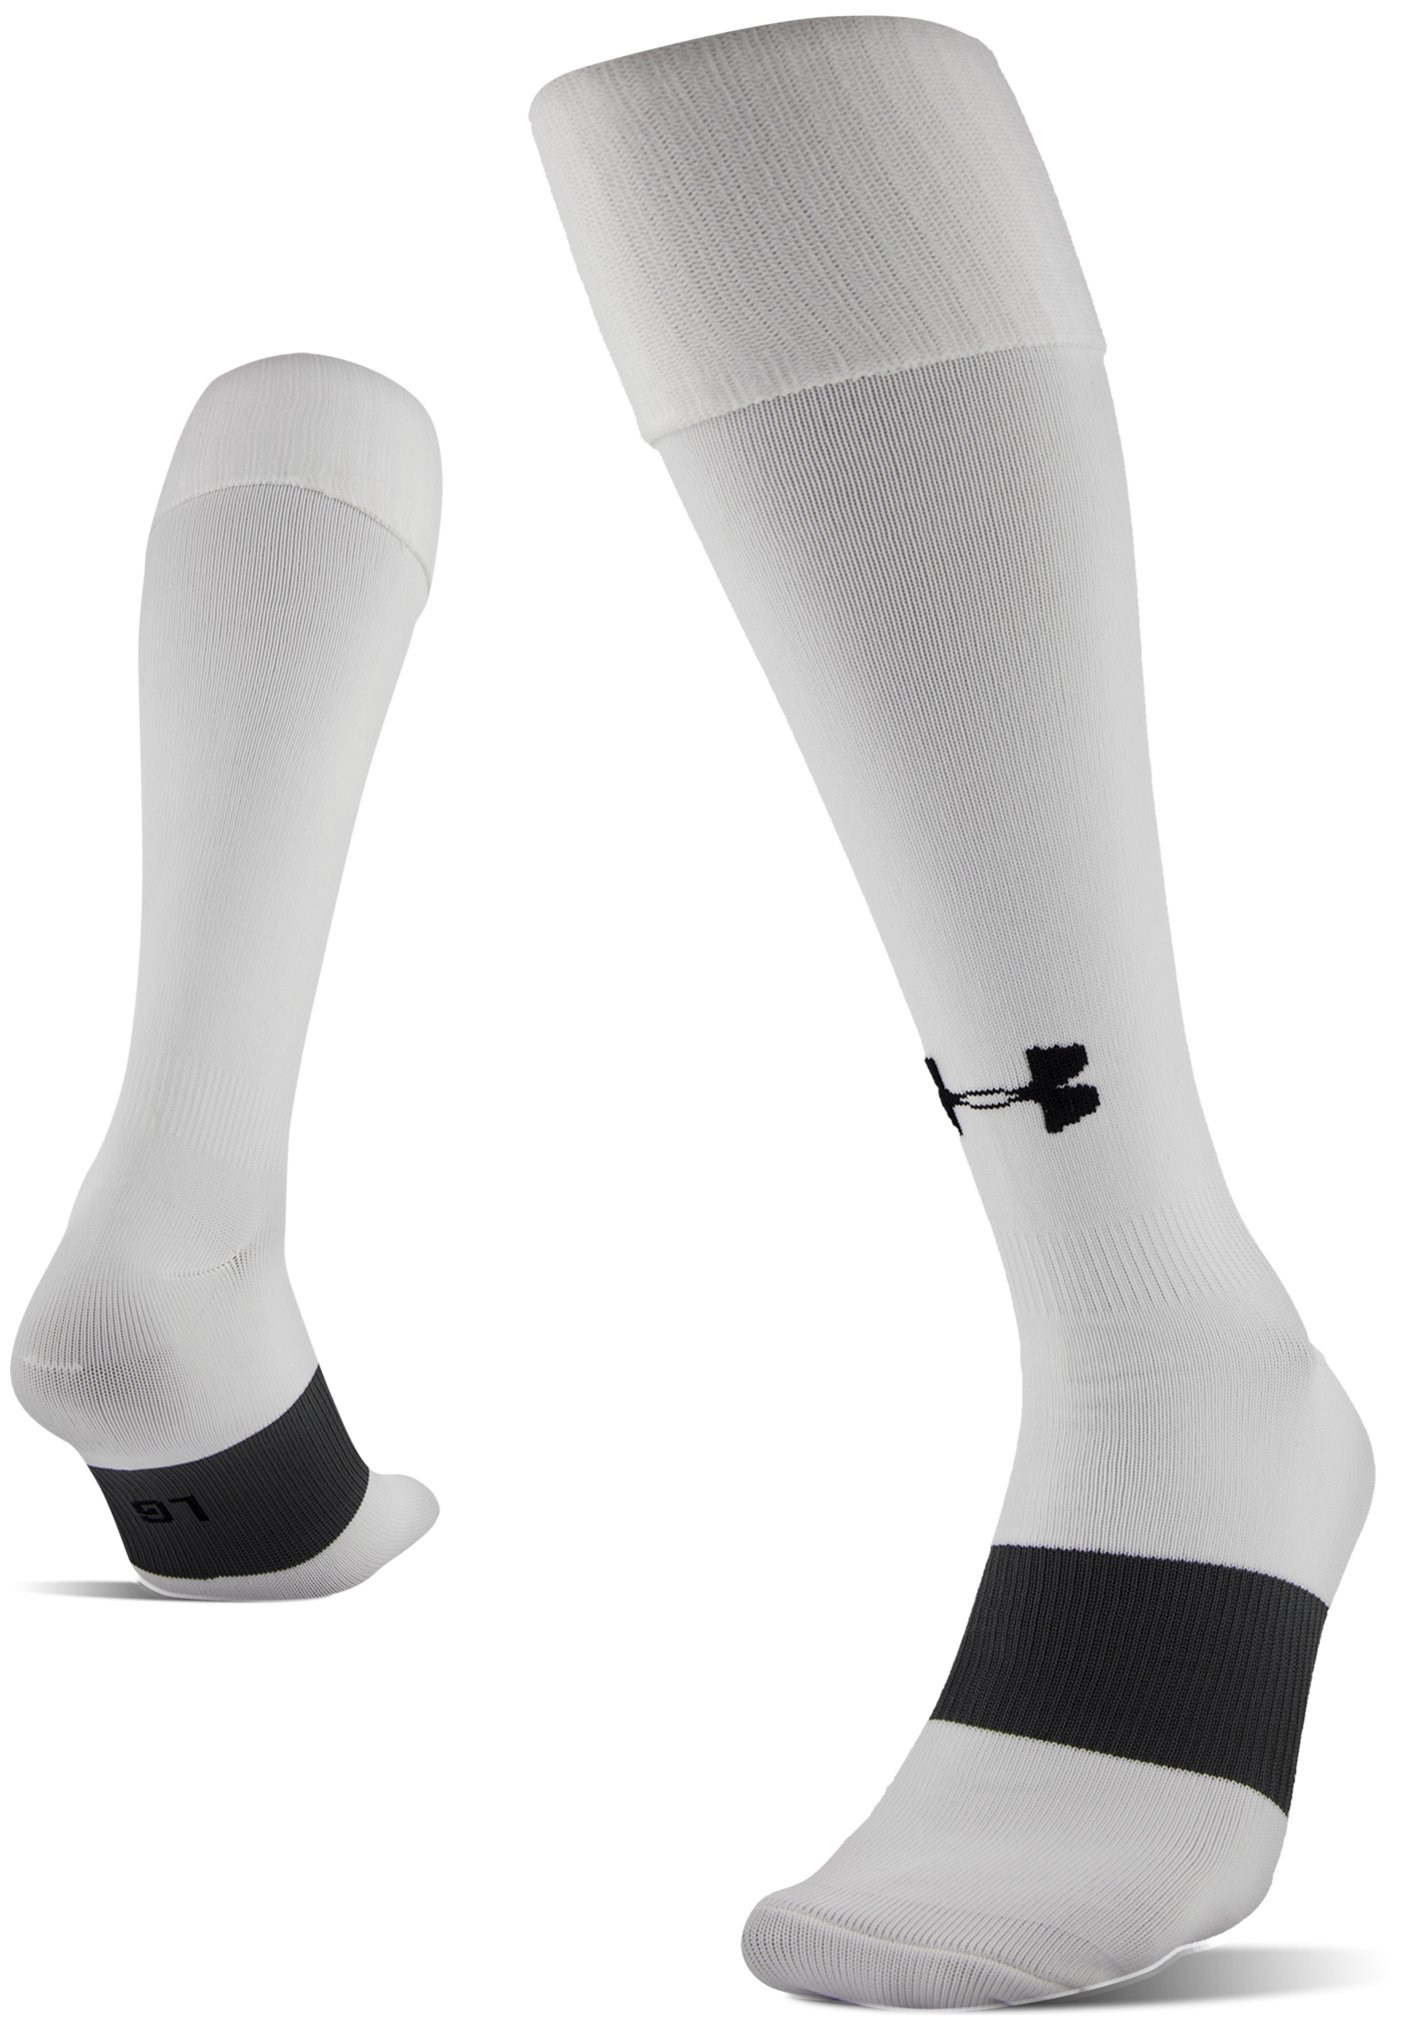 white high socks UA Soccer Solid Over-The-Calf Socks Great Fit...Great sock...Great fit .